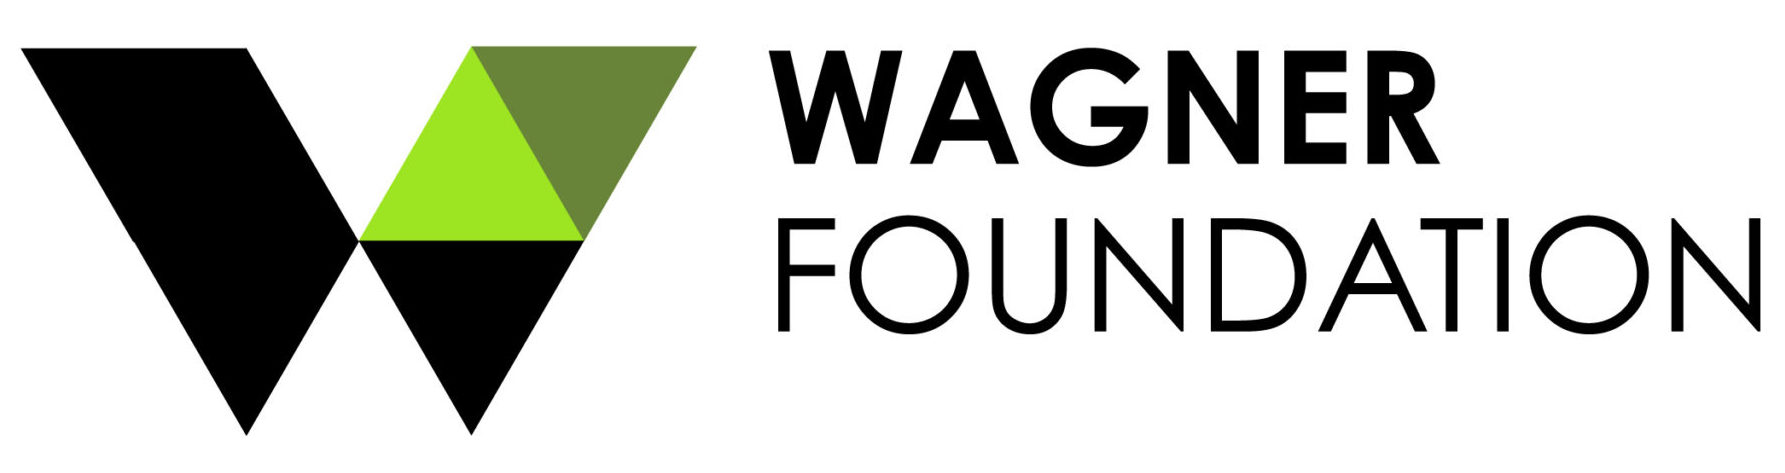 Wagner Foundation logo